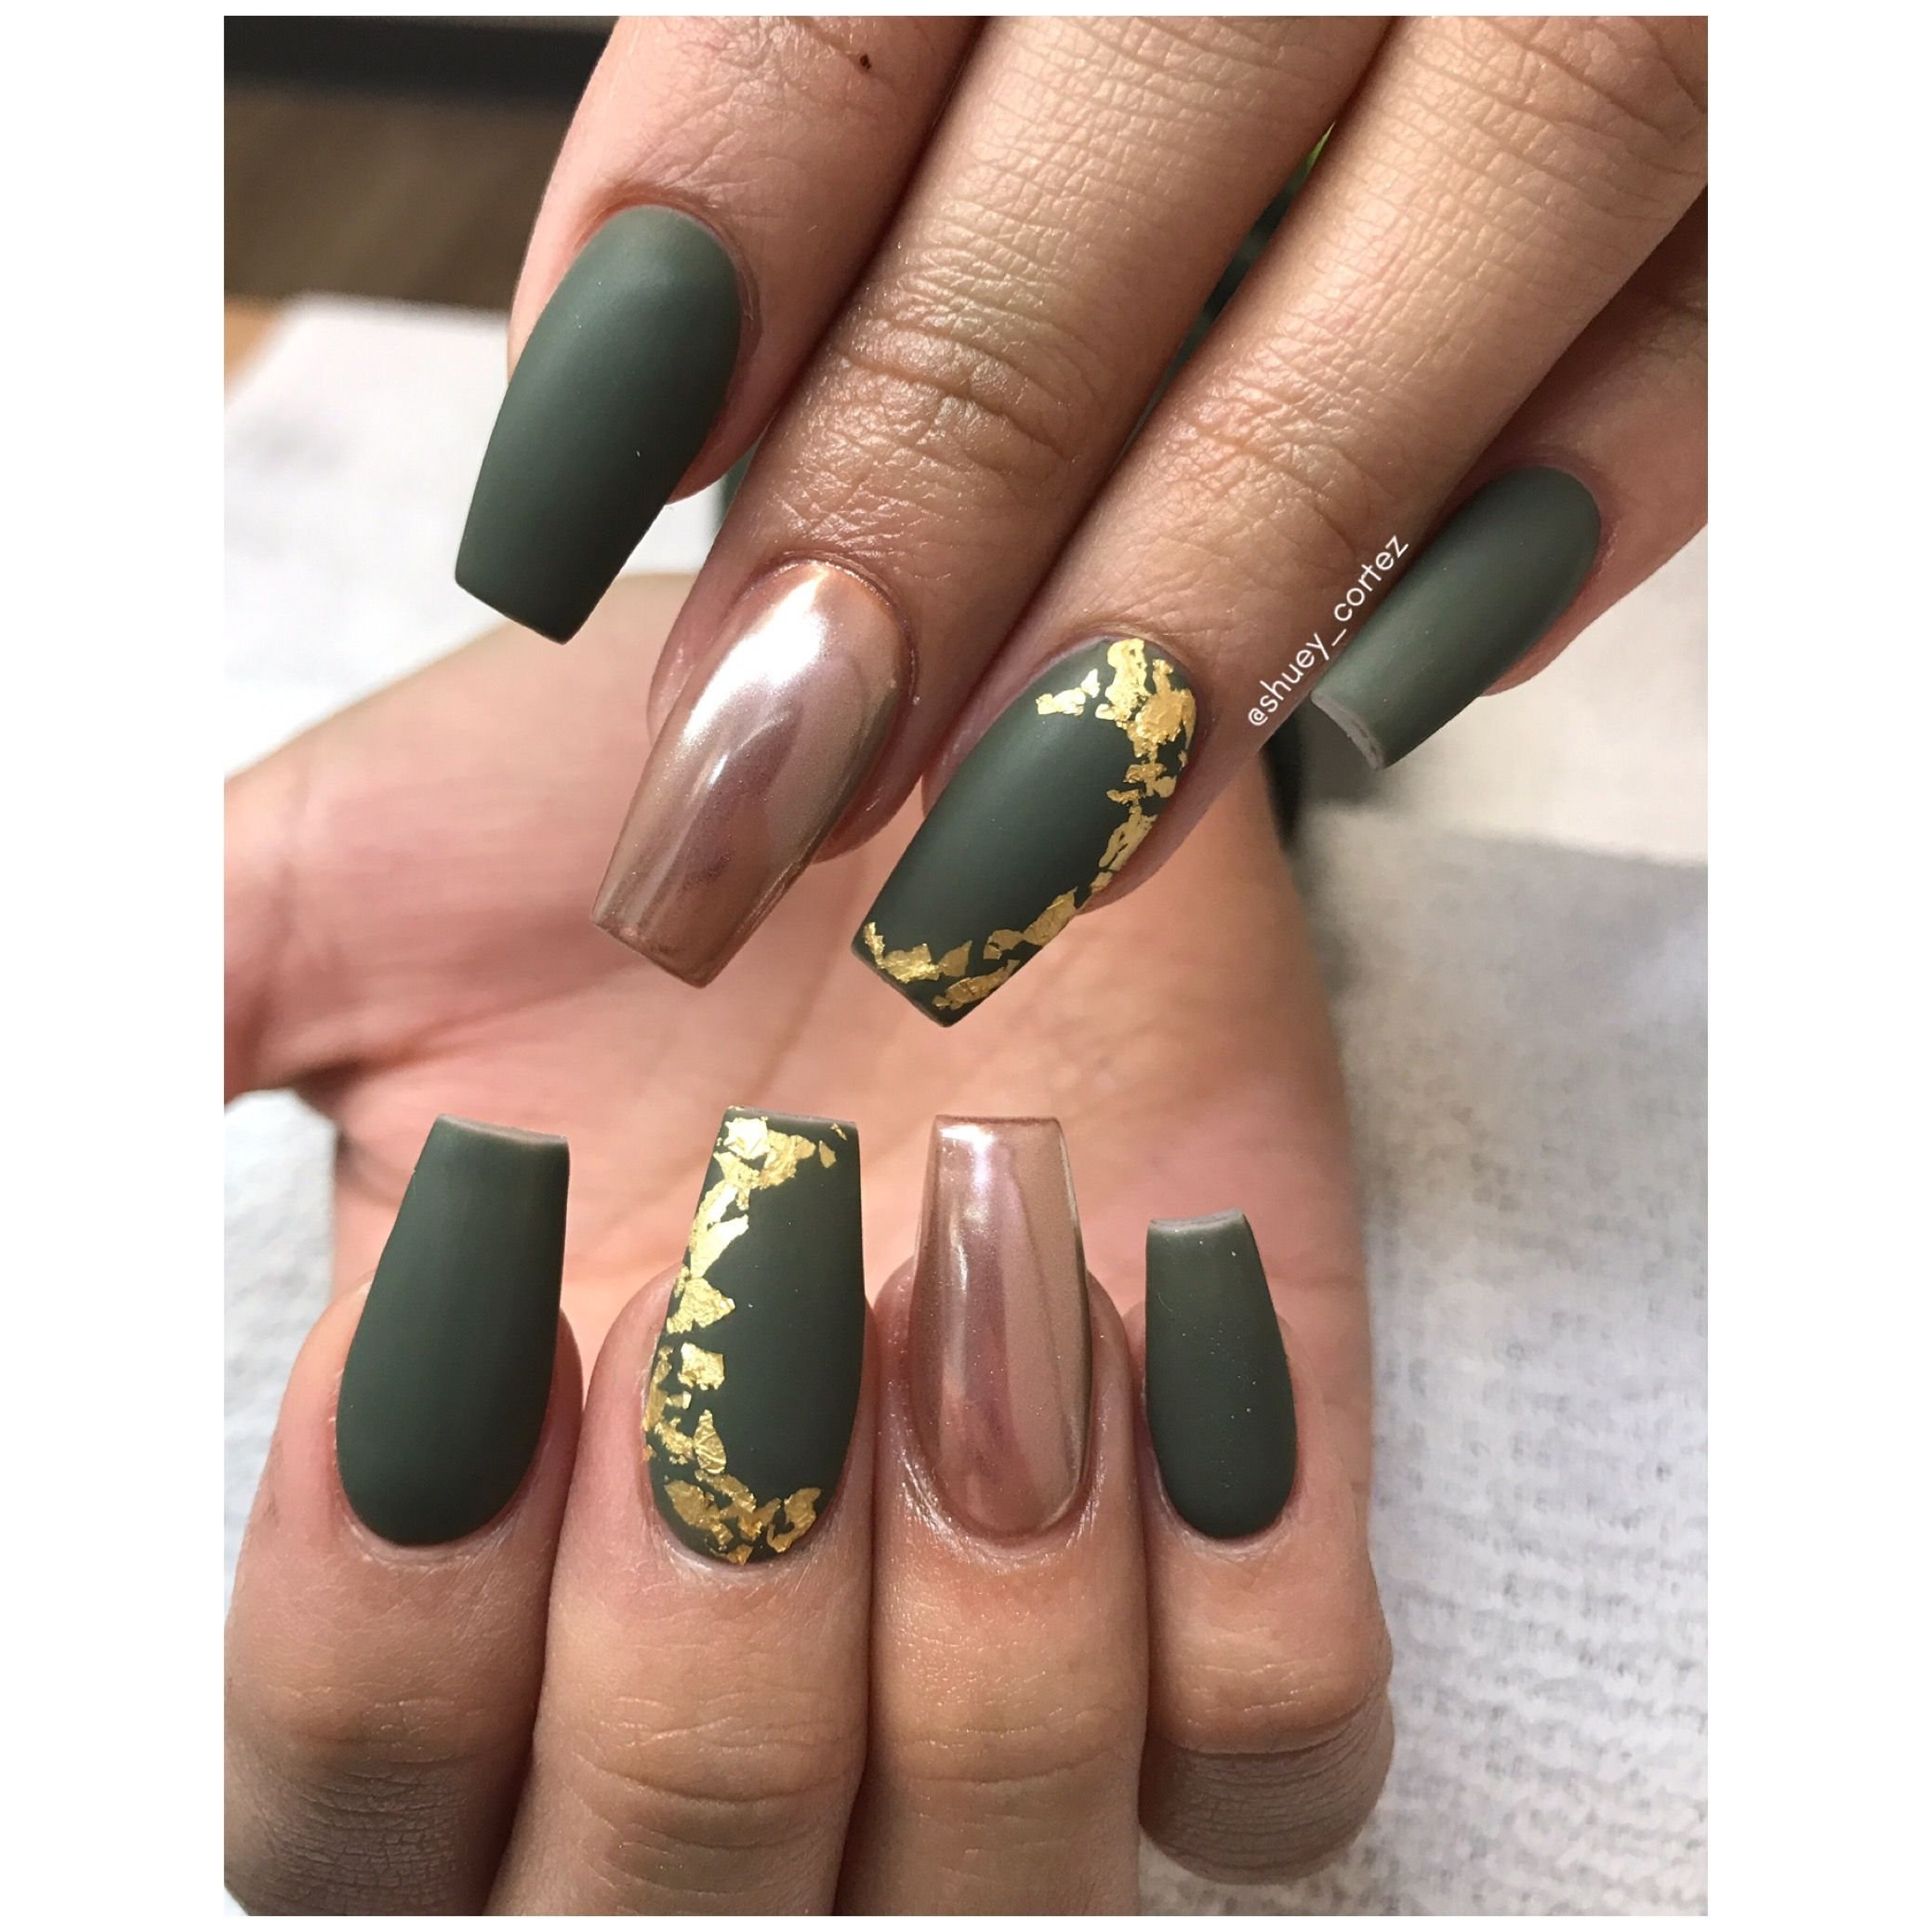 Olive Green Nails Instagram @shuey_cortez